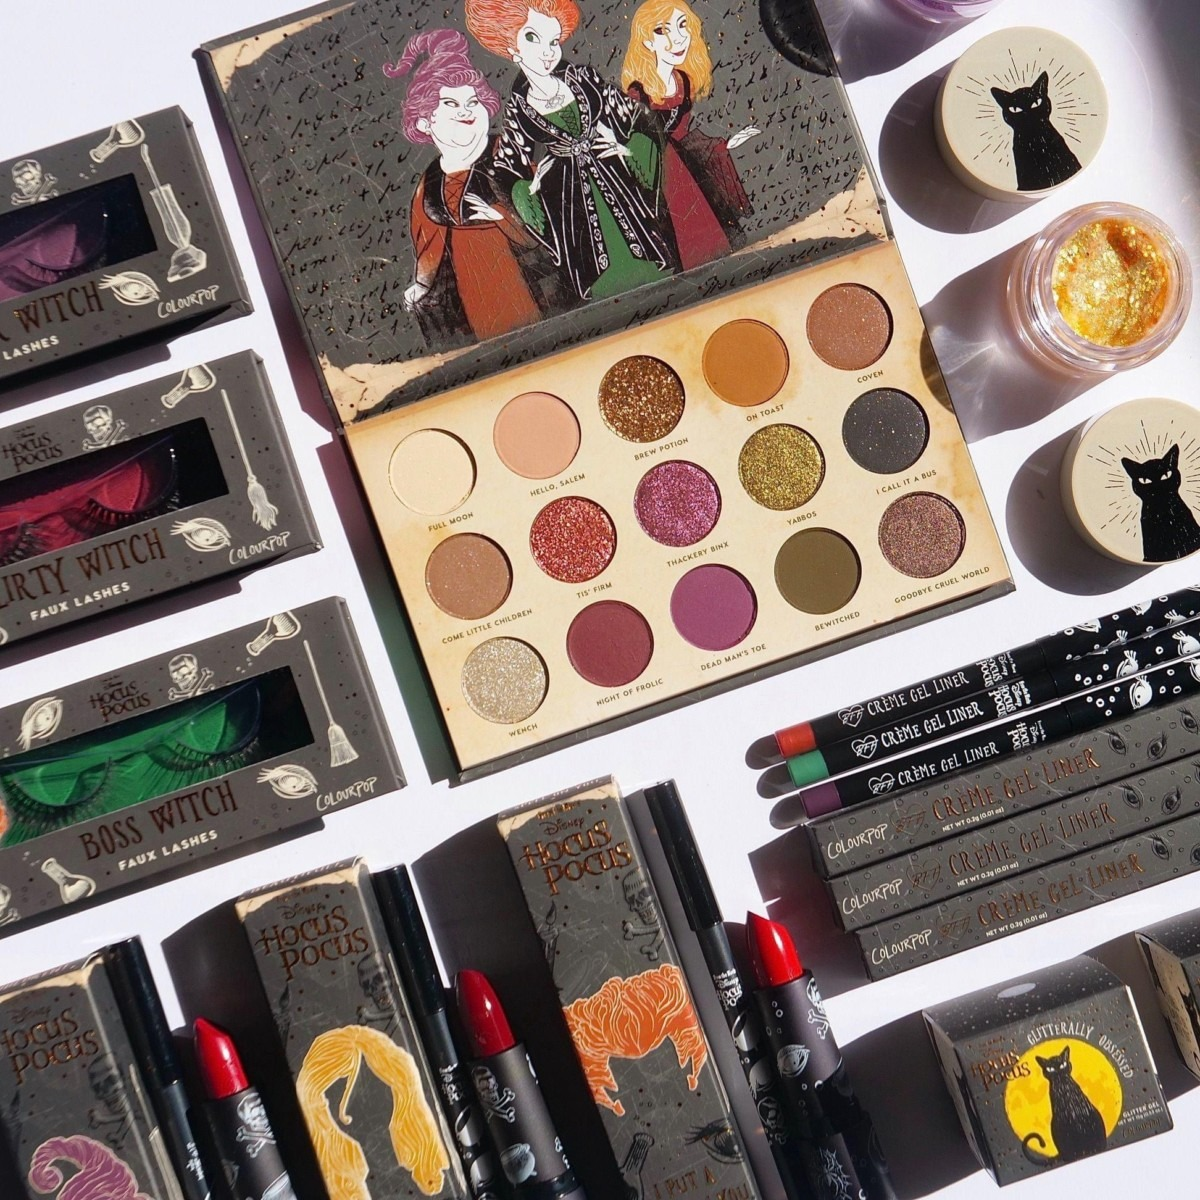 New Hocus Pocus Cosmetic Collab from ColourPop! 1